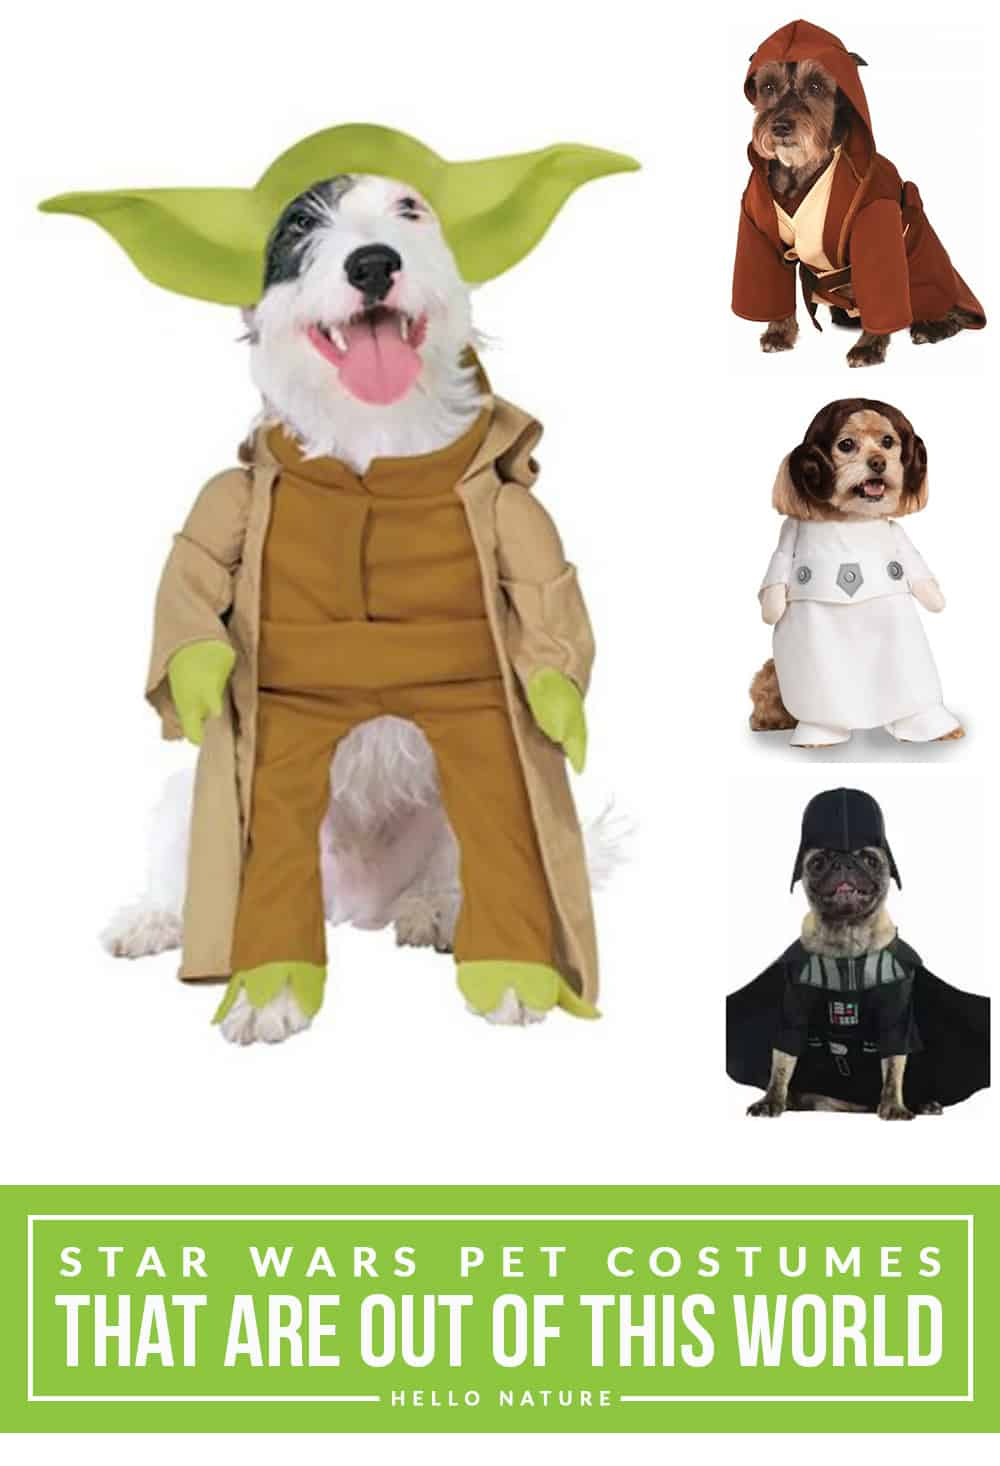 Your pooch will look out of this world with these fun Star Wars pet costumes! Now the whole family can dress up for Halloween!